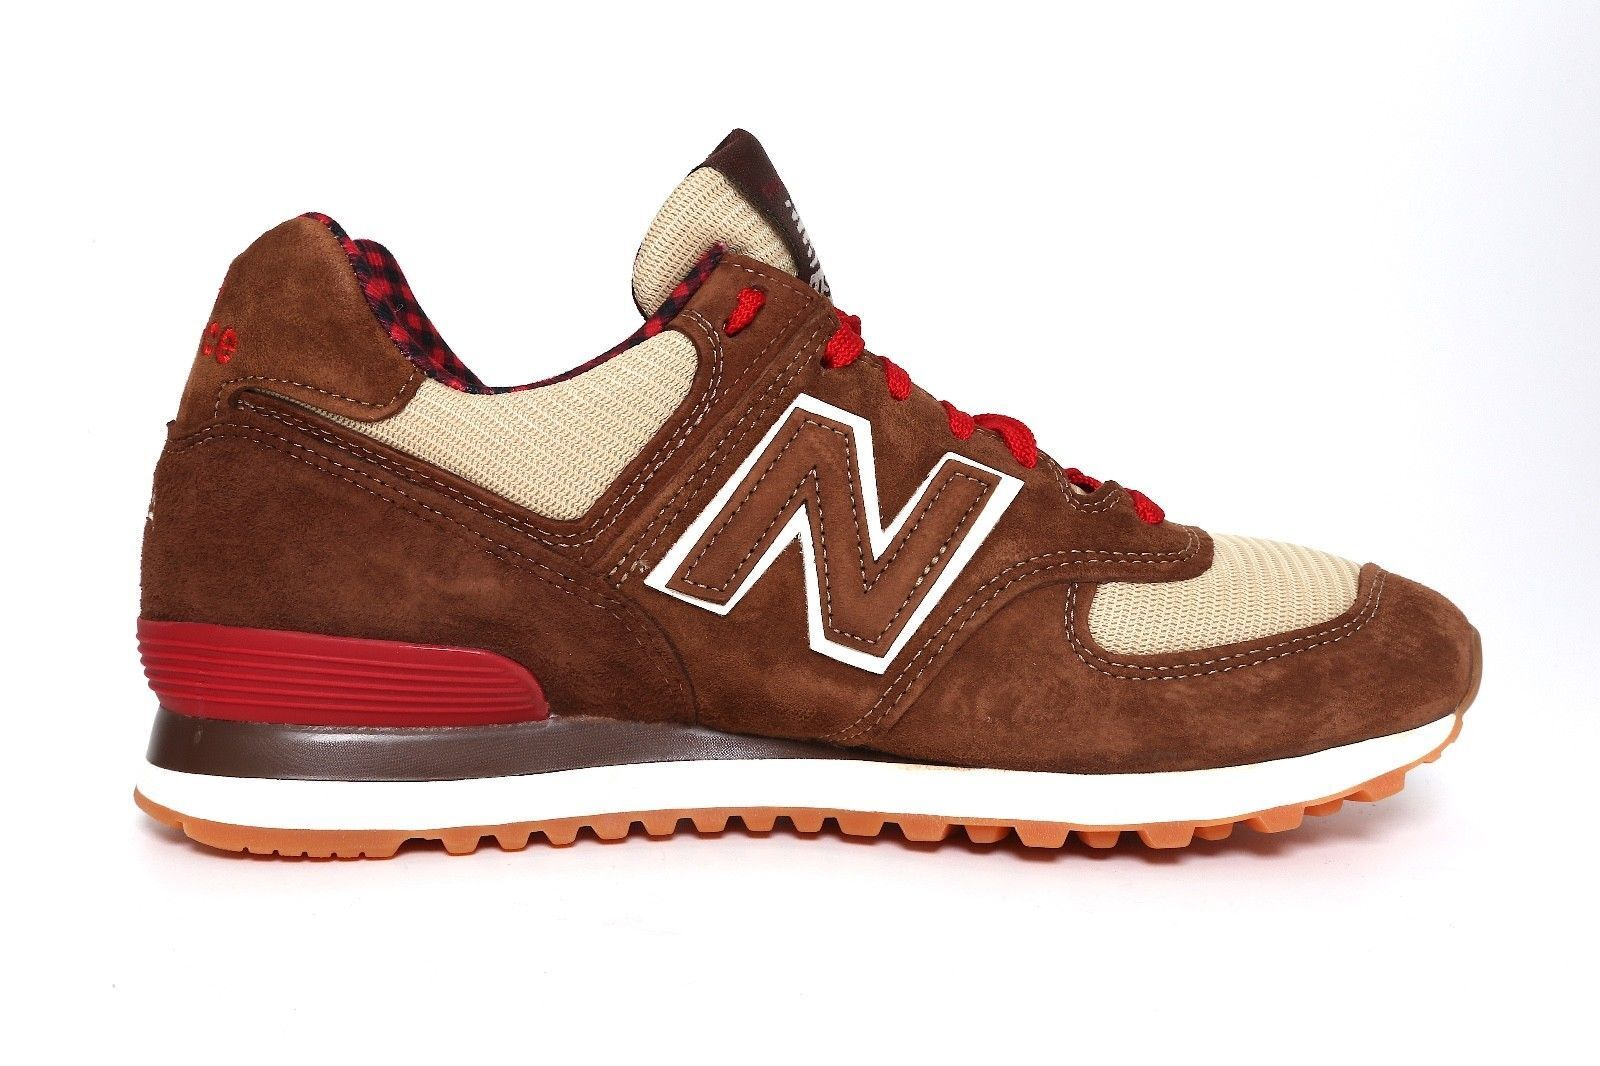 New Balance Classics sz 8 Paul Bunyan Brown Red Made in USA US574 [M574PB] 574